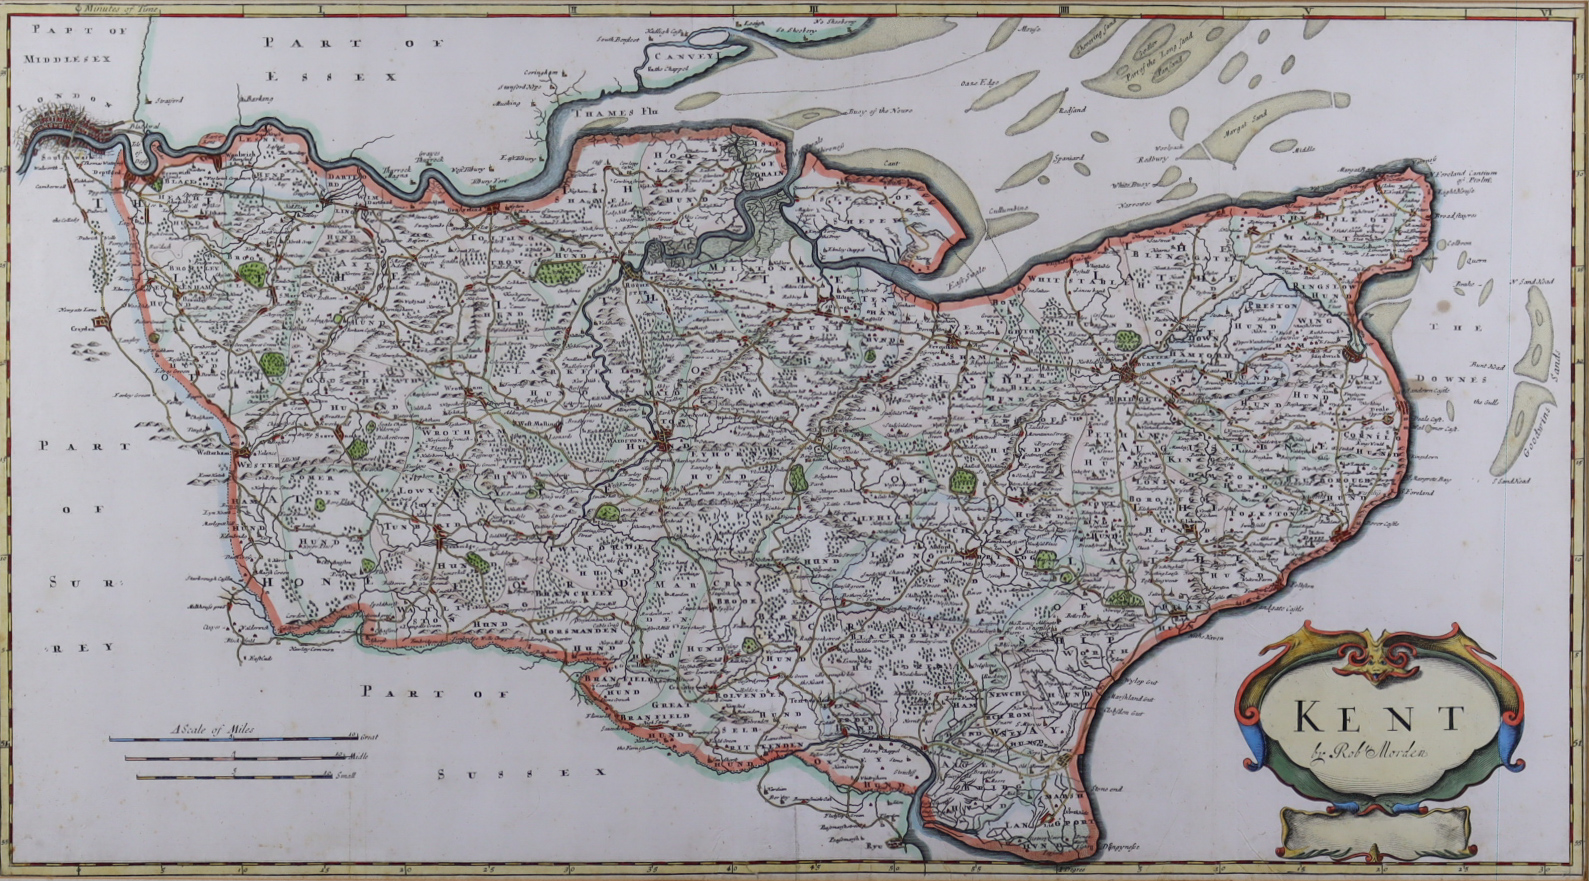 Robert Morden (fl.1650-1703) - Two coloured engravings - Map of Kent, 13.75ins x 24.75ins, and Map